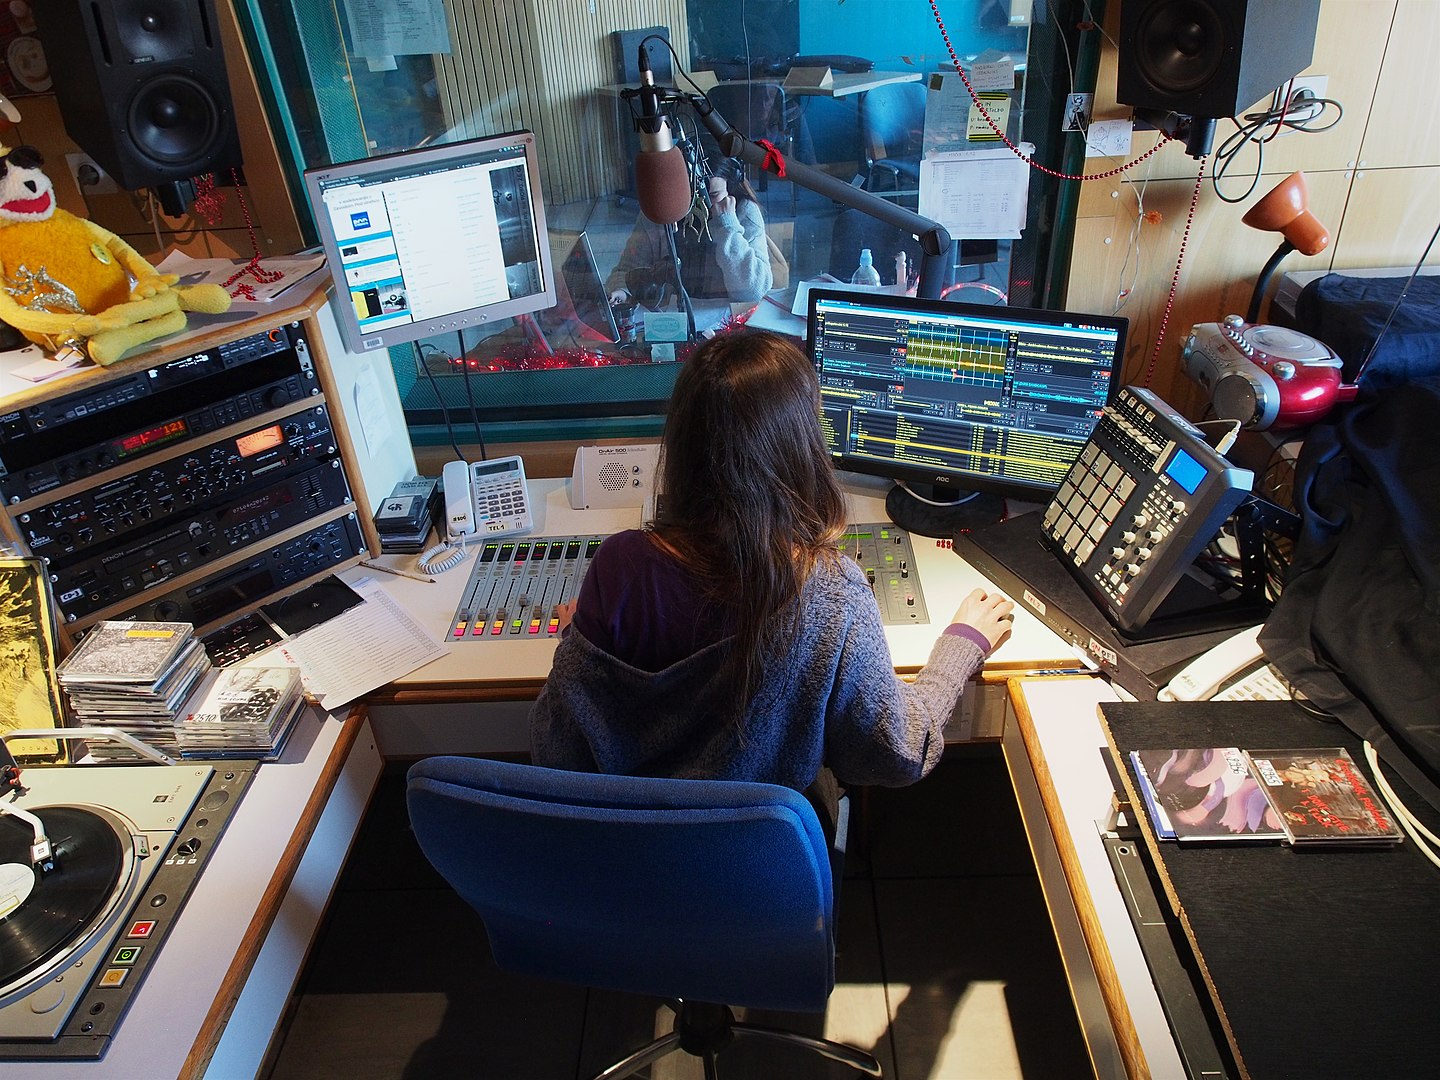 Radio Študent, one of Europe's strongest alternative stations, struggling with funding cuts